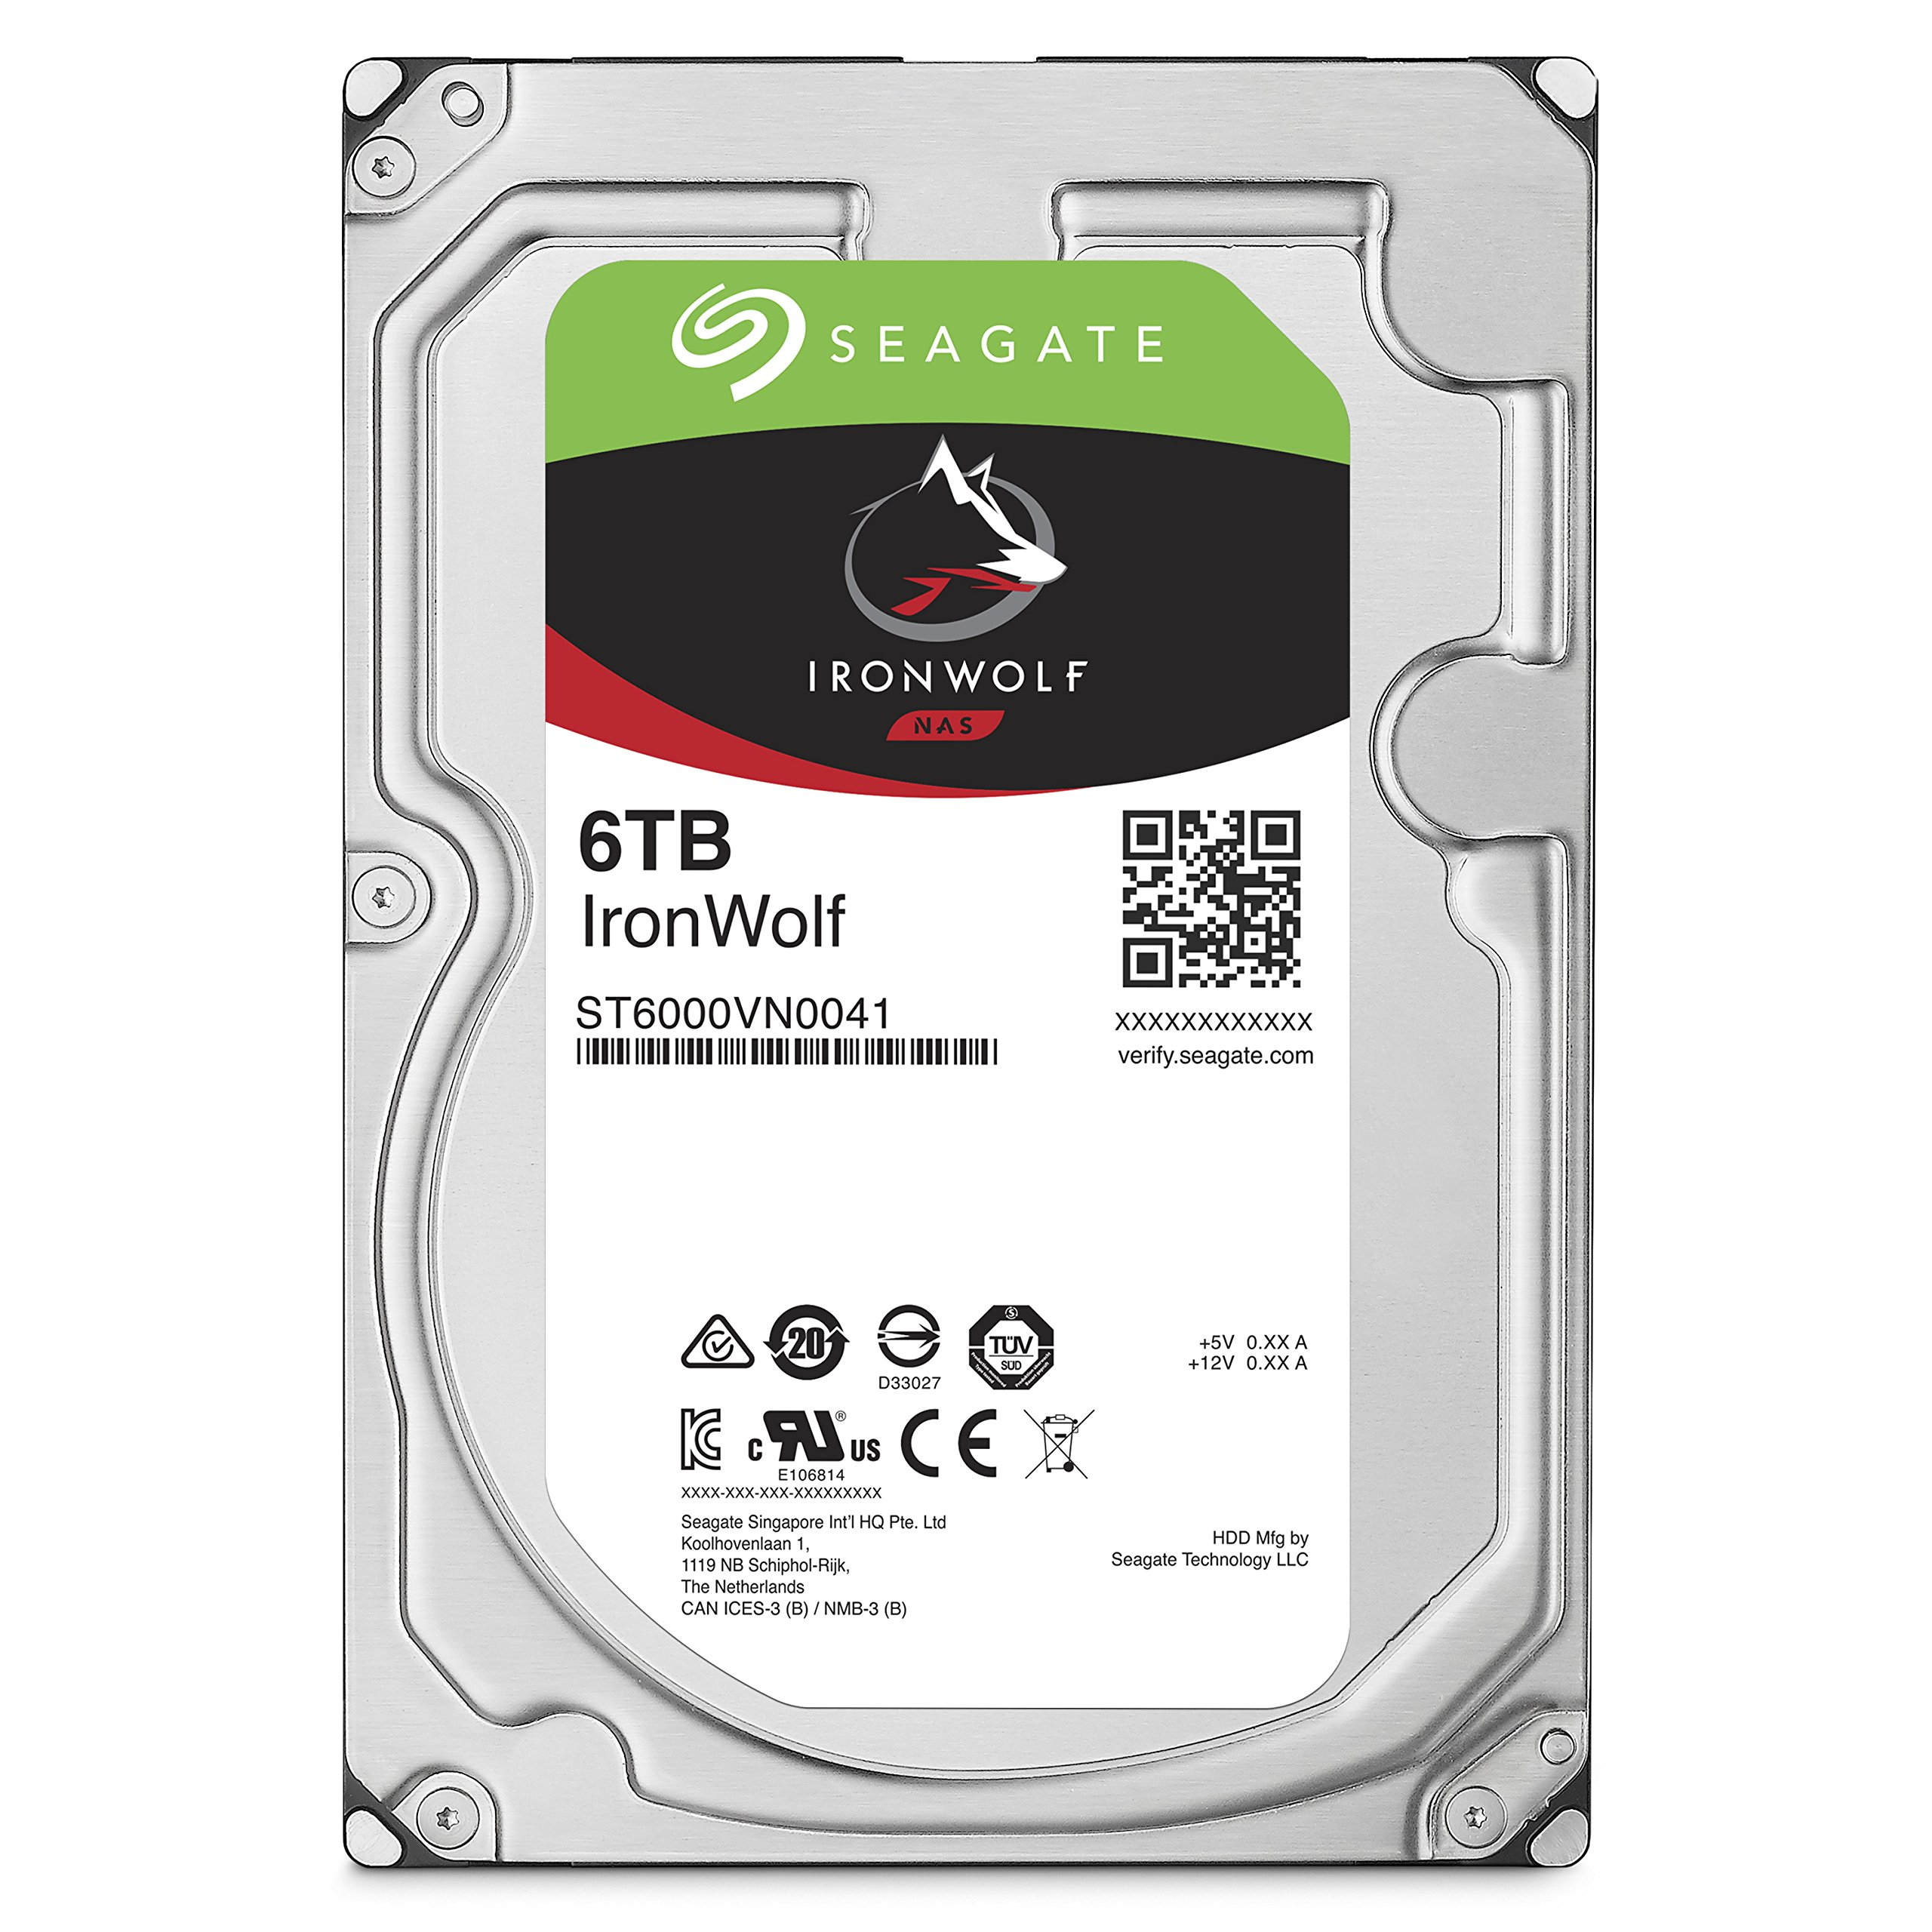 Seagate 6TB IronWolf NAS SATA 6Gb/s NCQ 128MB Cache 3.5-Inch Internal Hard Drive (ST6000VN0041) by Seagate (Image #1)